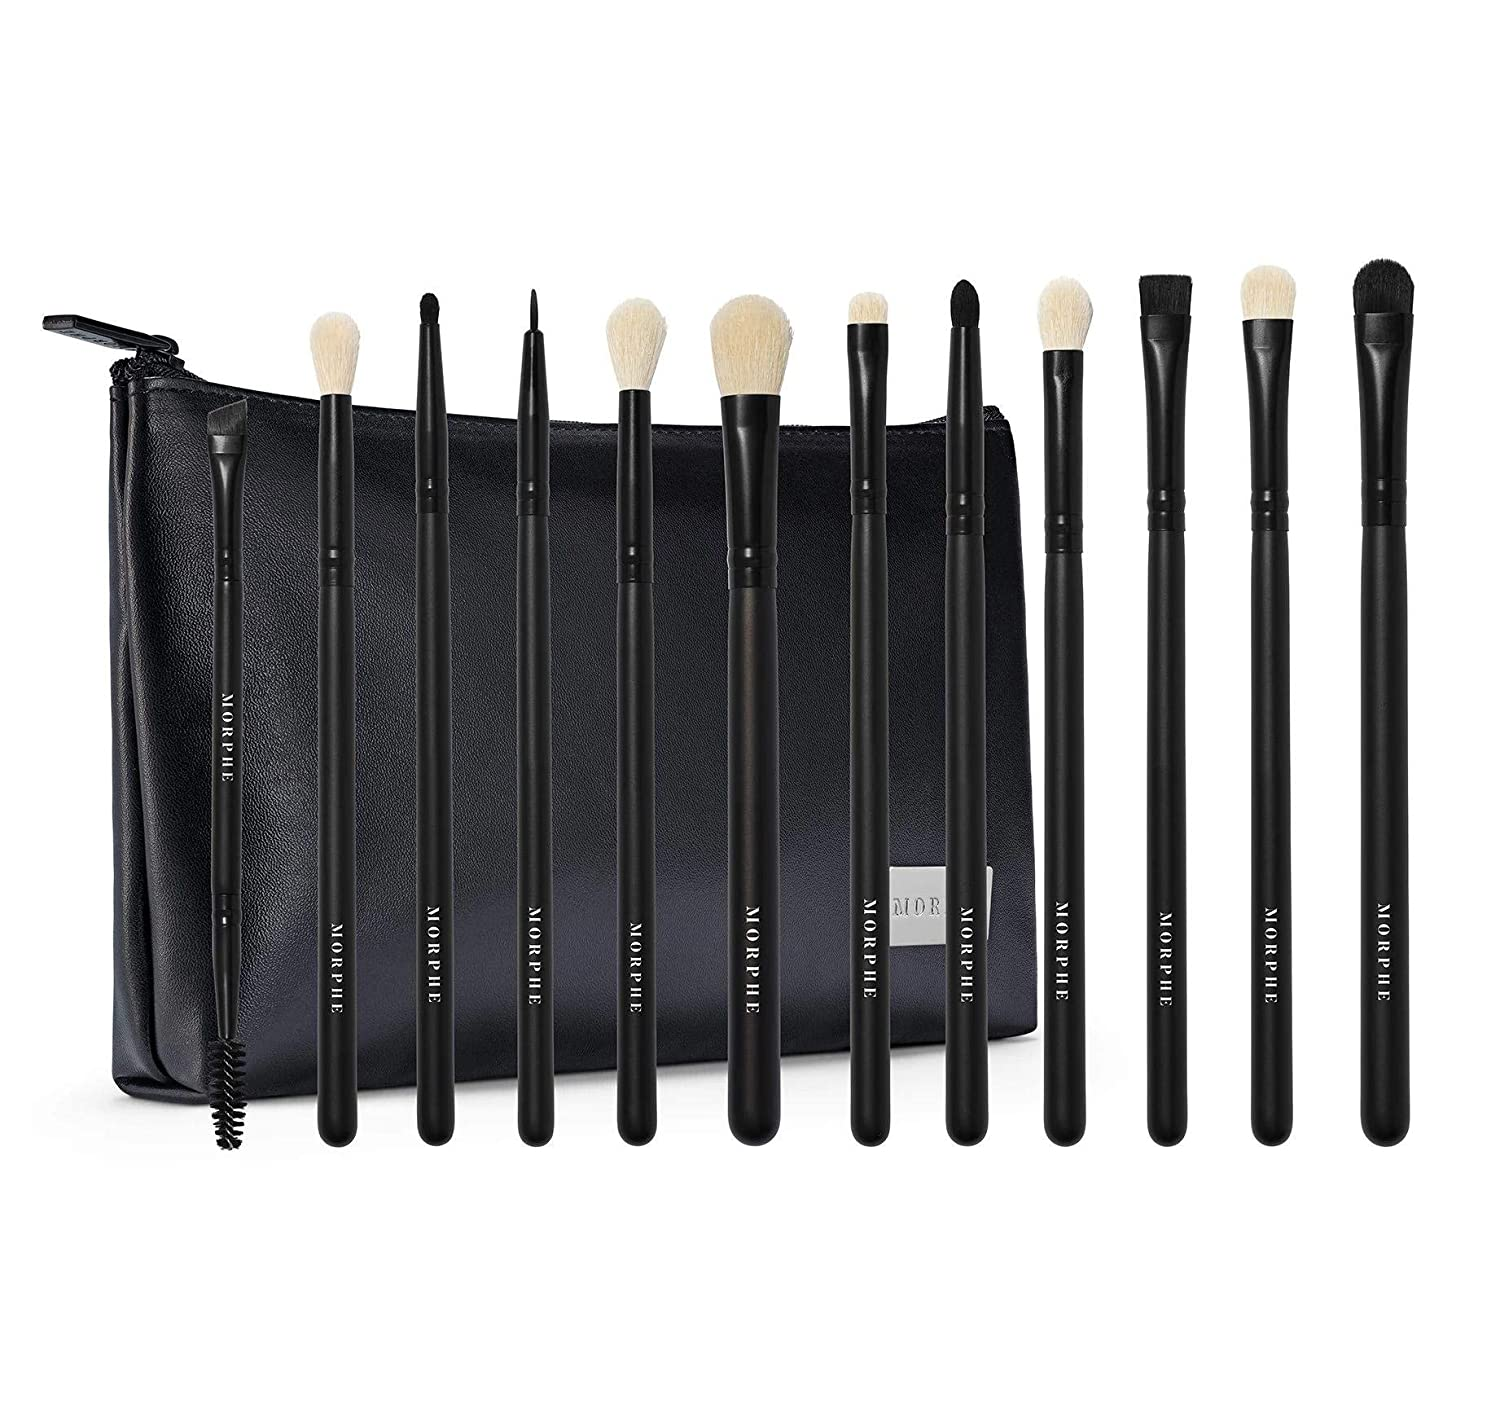 MORPHE Eye Obsessed Brush Set 12 Piece With Bag